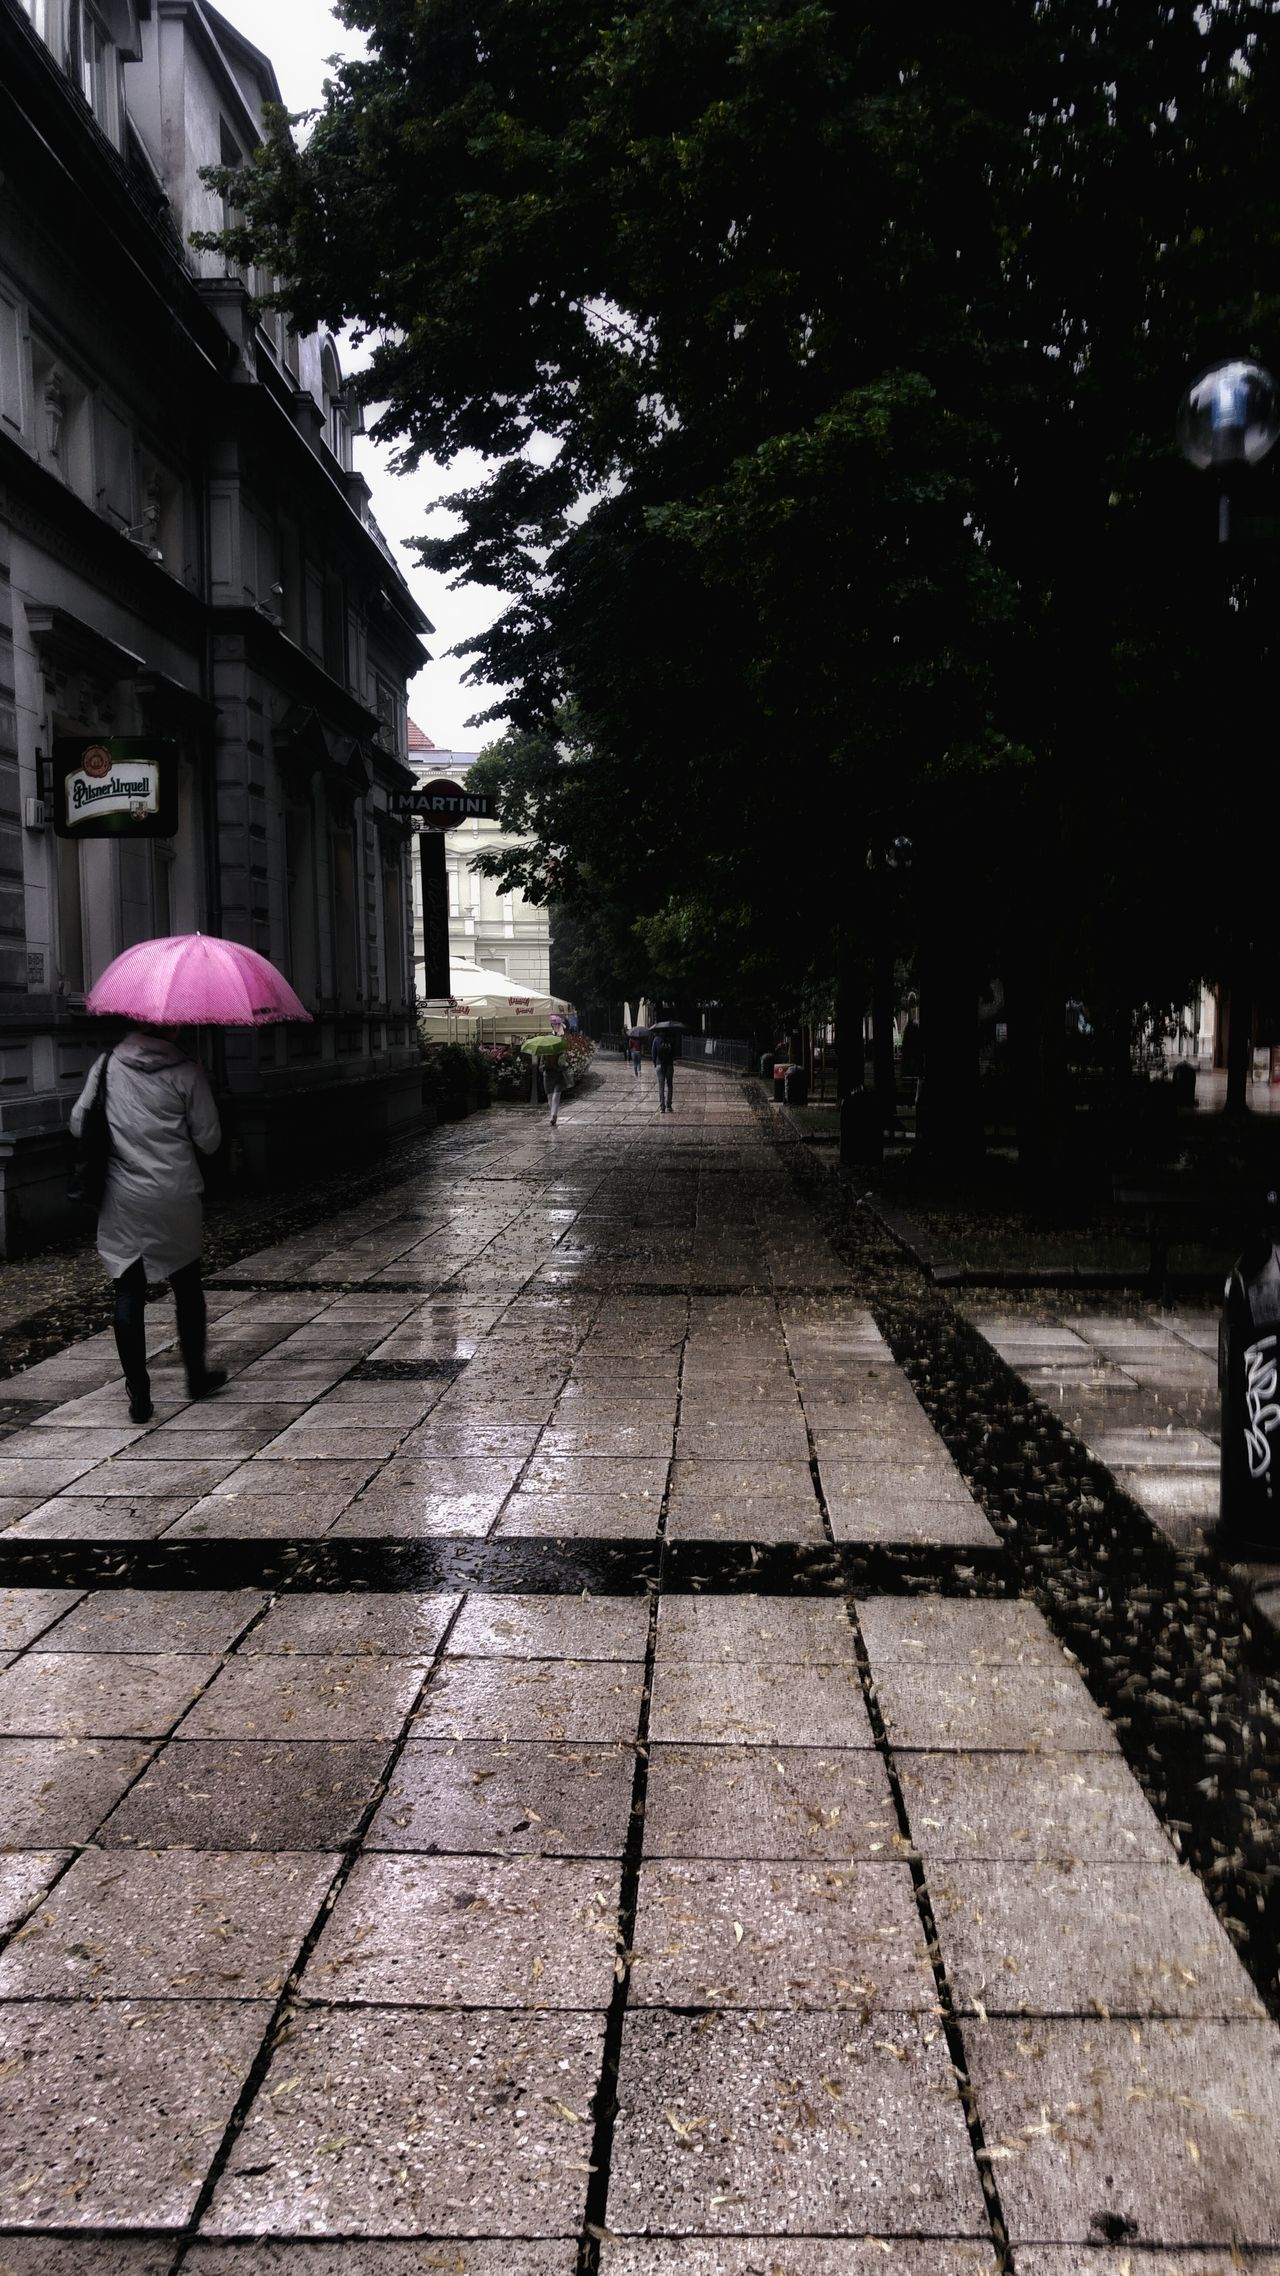 Rainy Day Deszczowy Dzień Stare Miasto Old Town Spacer Walking On The Rain Parasol Umbrella Pink Umbrella Przechodnie Pedestrians Green Tree Pavement Chodnik Wet Pavement